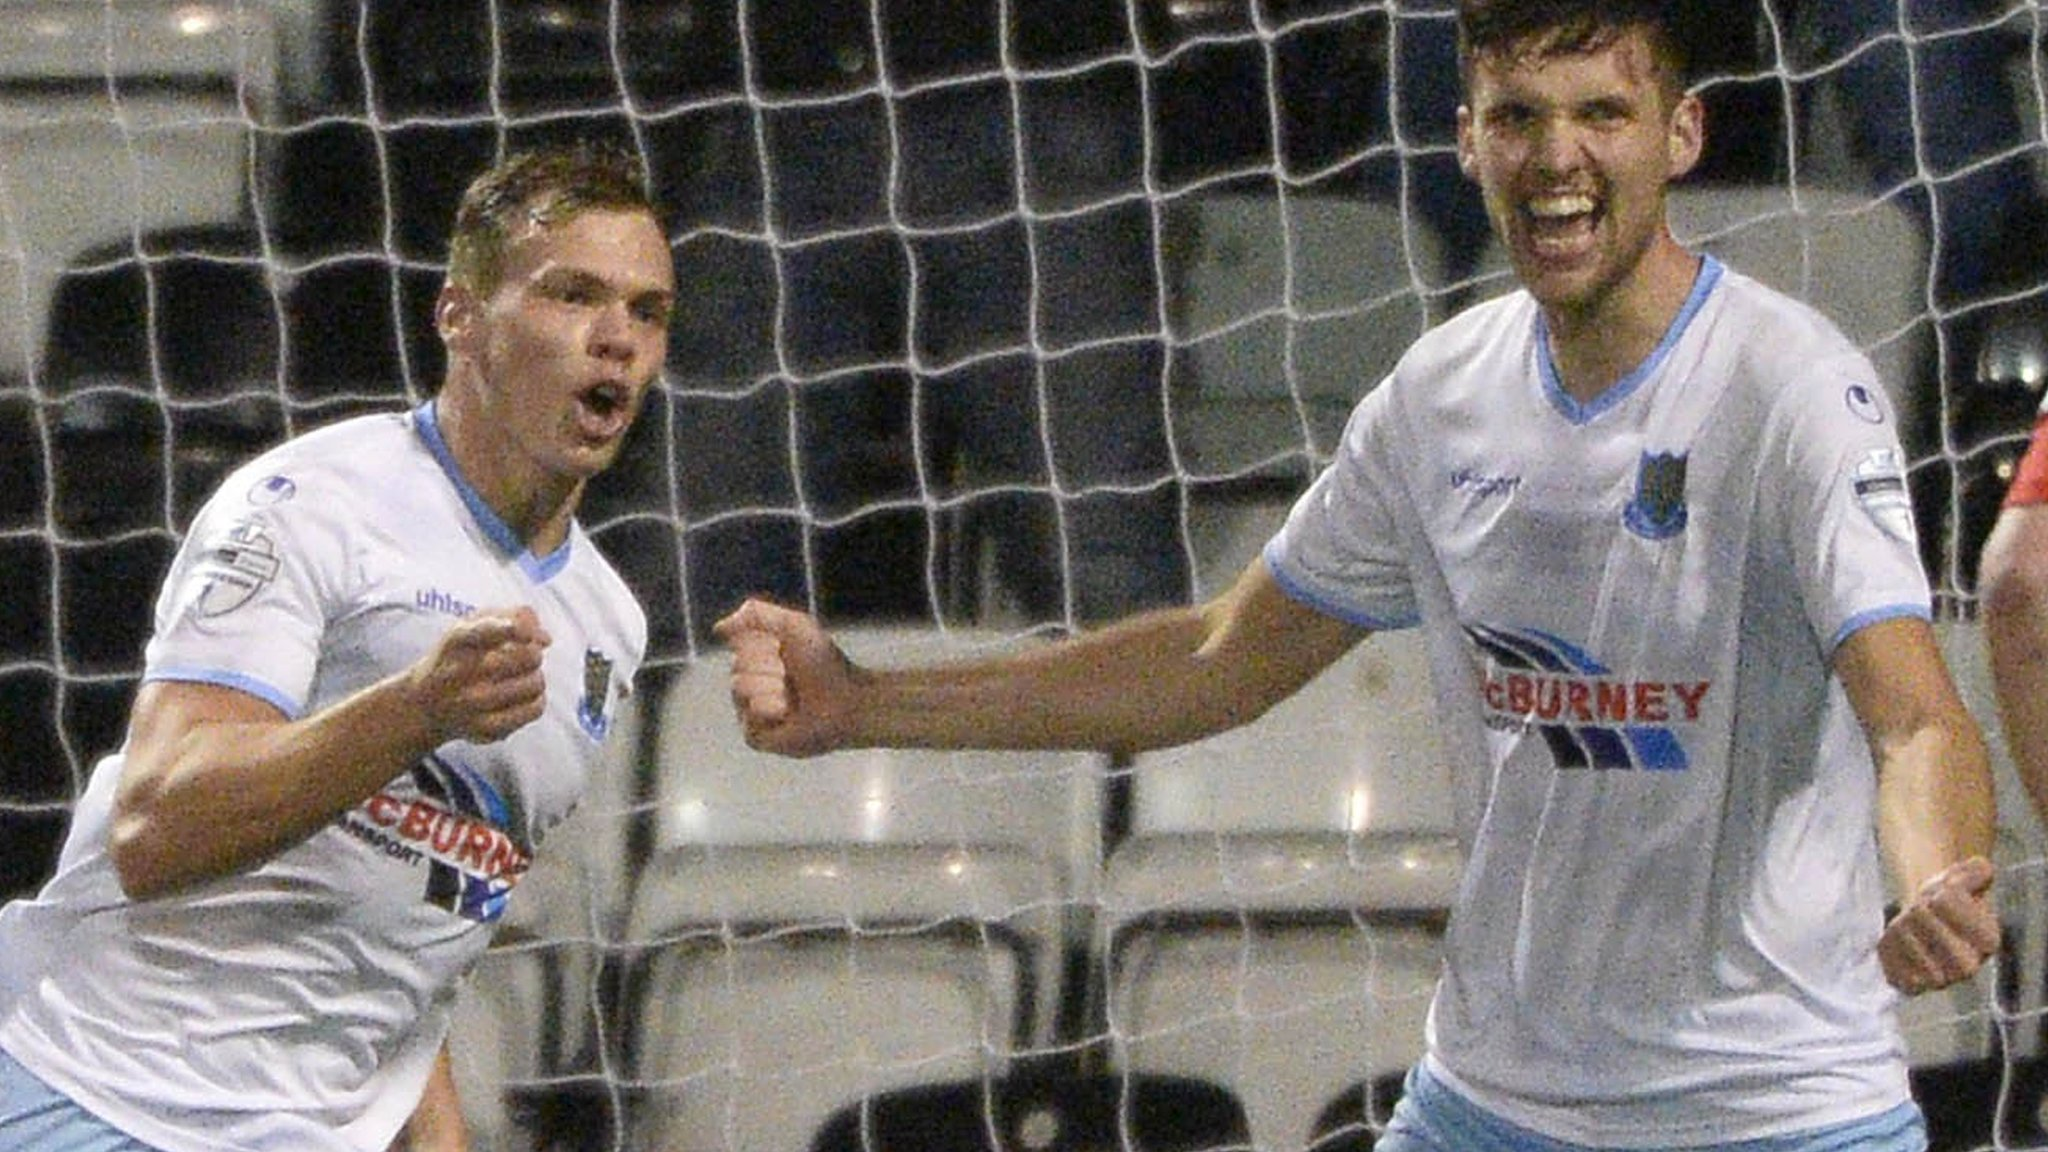 League Cup semi-finals: Ballymena United and Linfield reach decider with one-goal wins